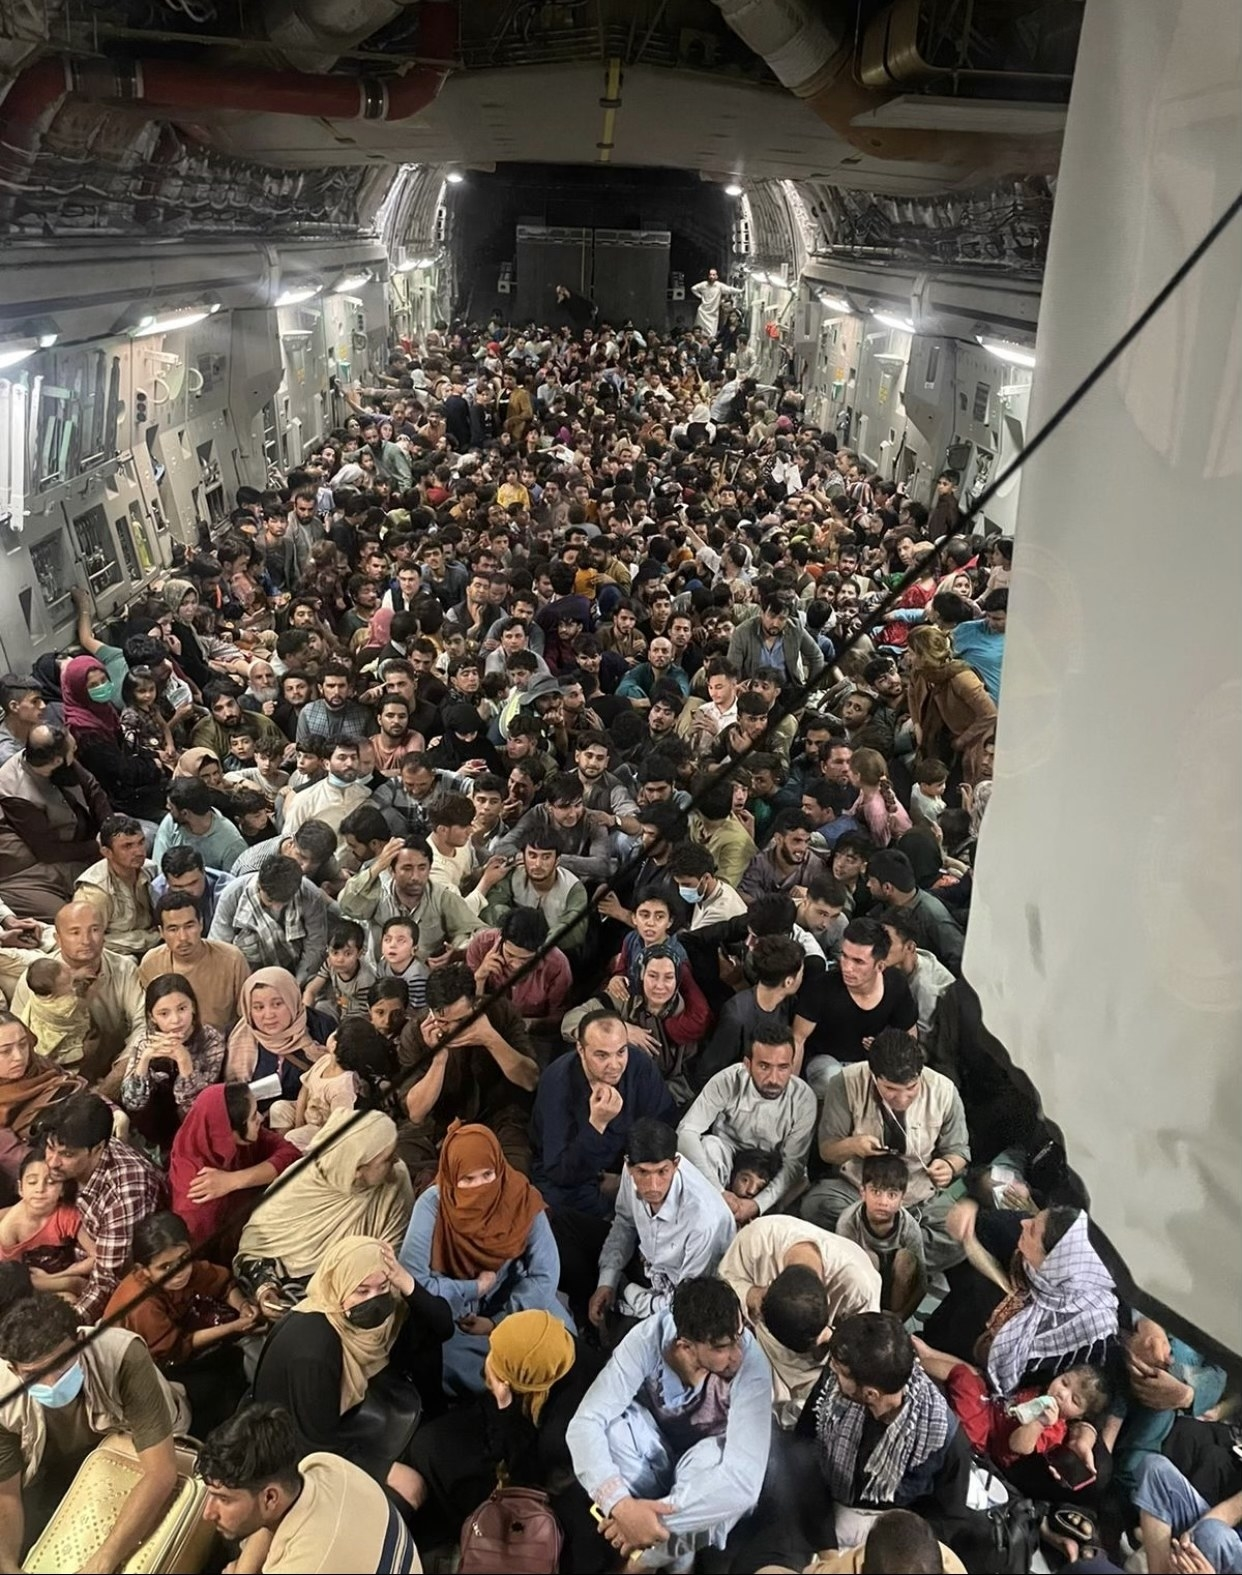 US Air Force C-17 Globemaster III transports approximately 640 Afghan citizens from Hamid Karzai International Airport